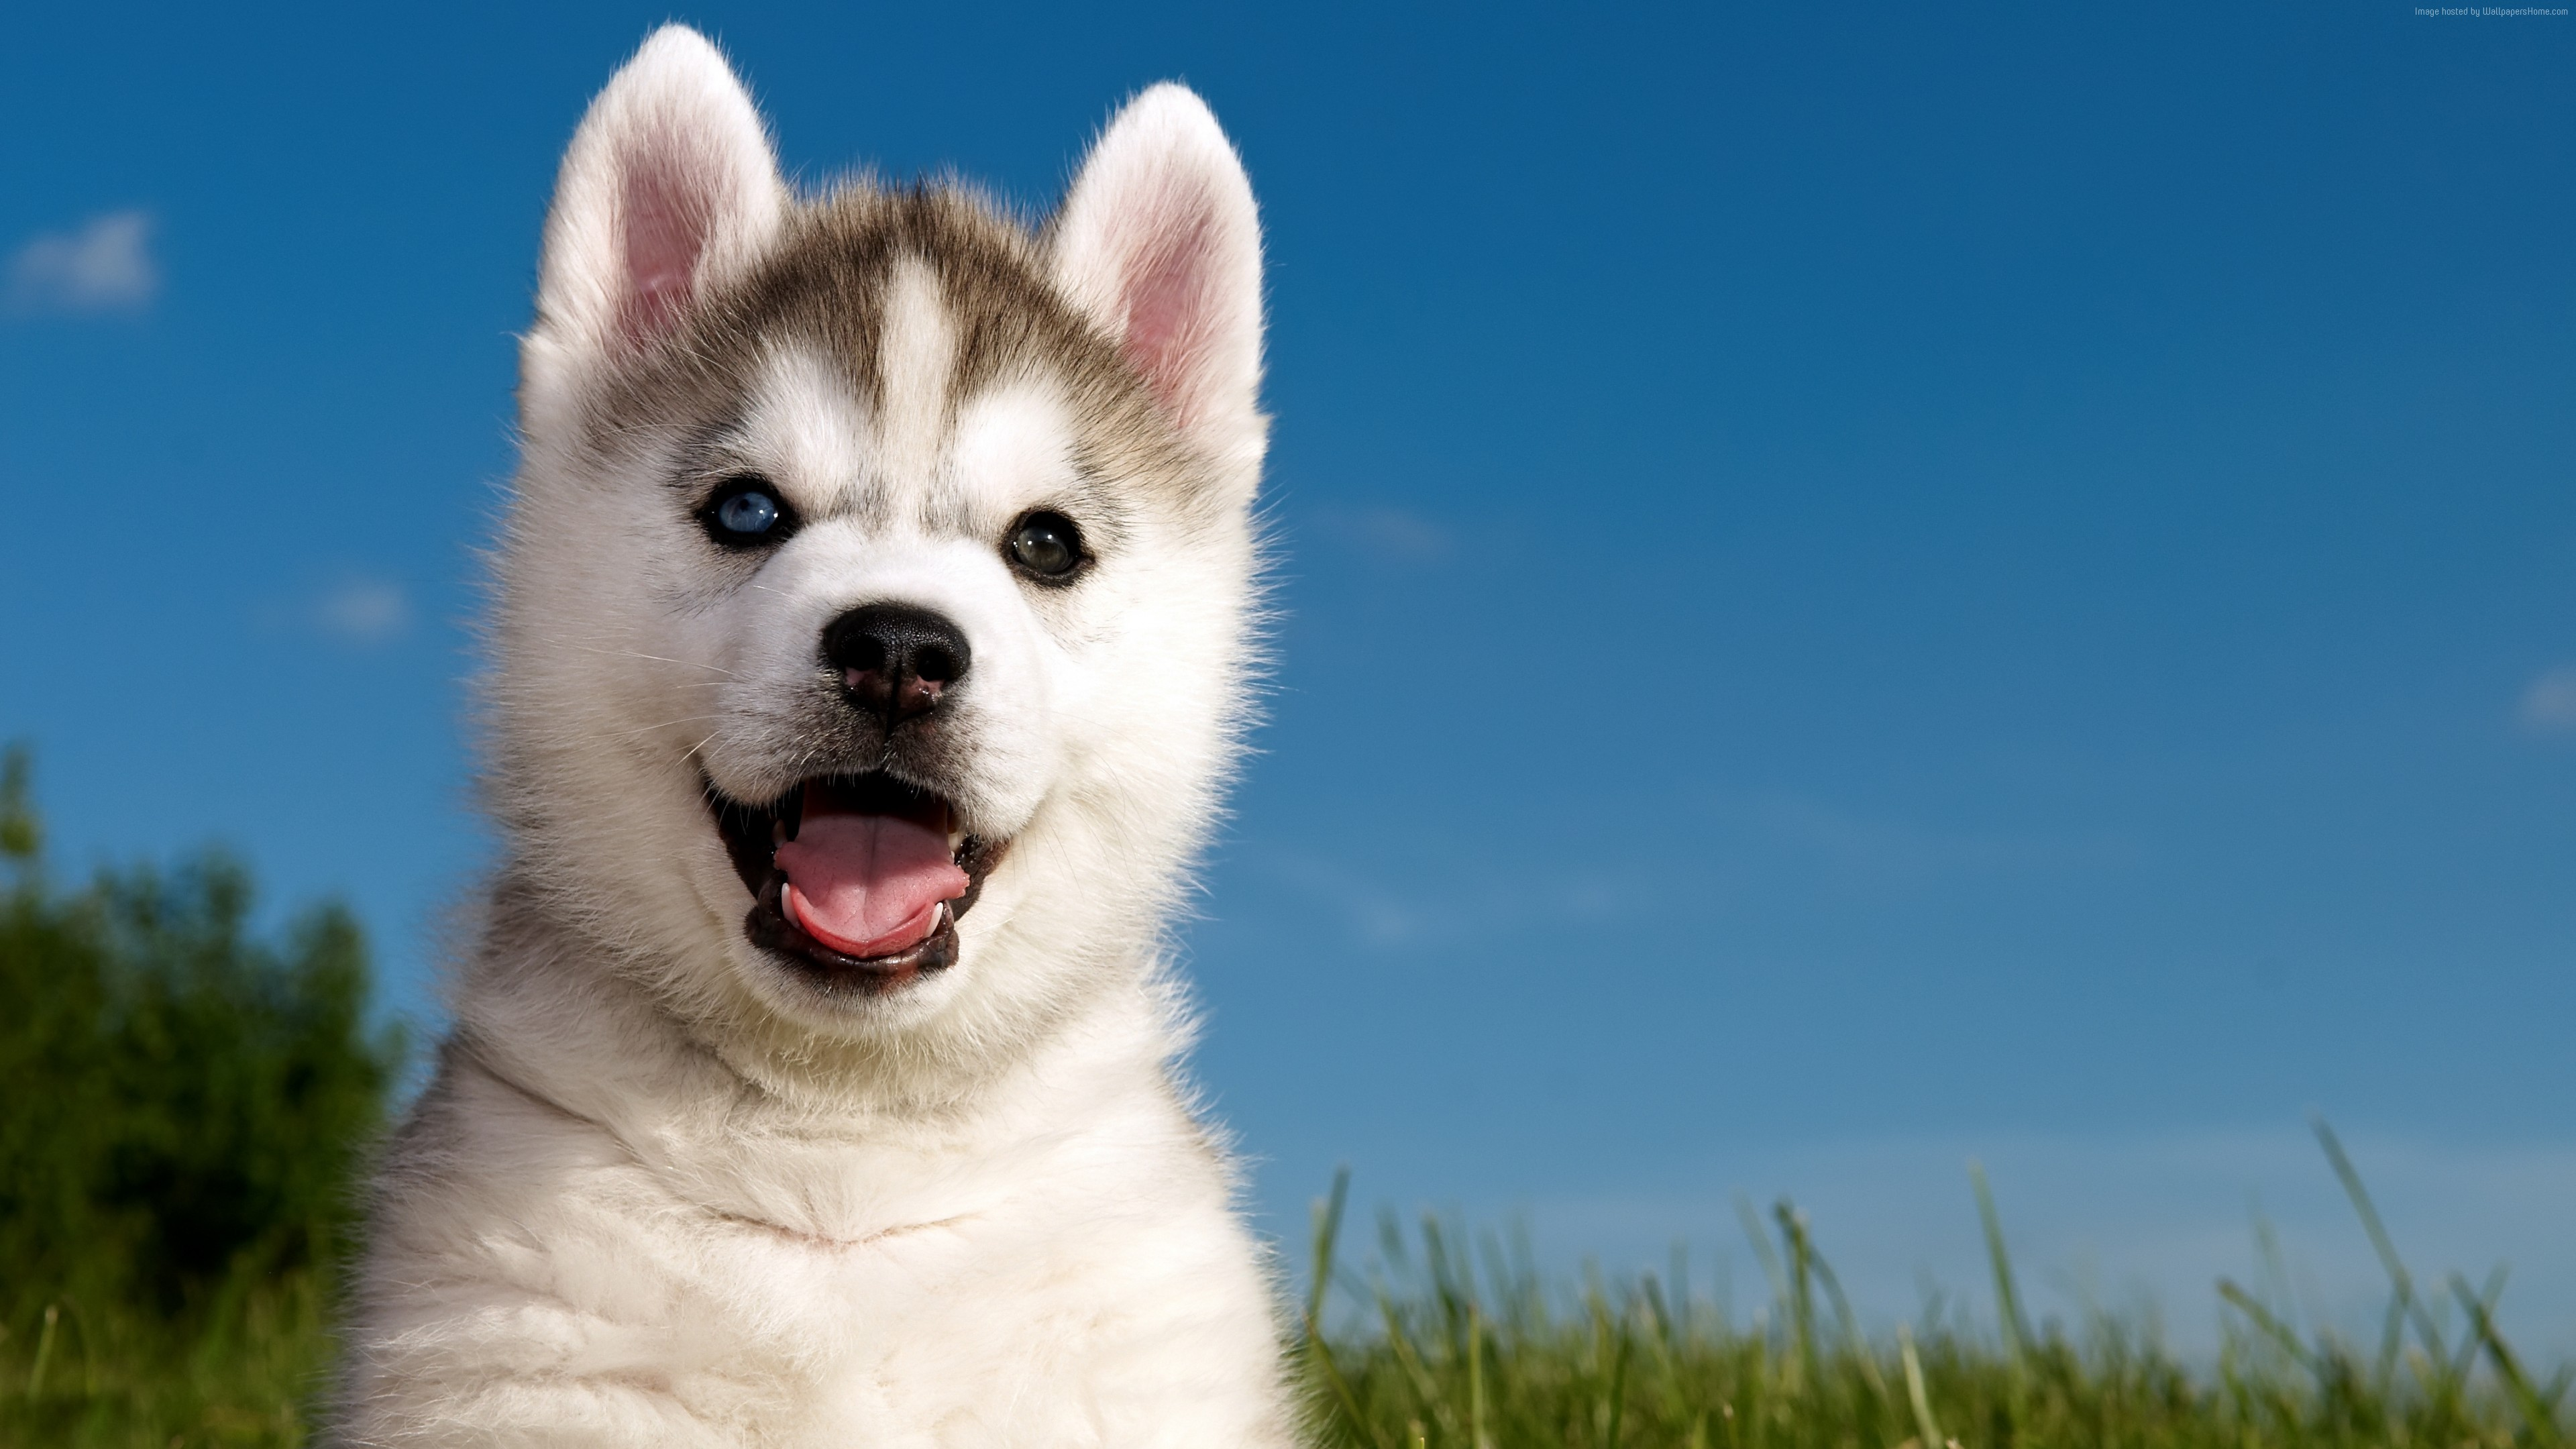 Wallpaper Husky, puppy, funny animals, cute animals, 4k, Animals